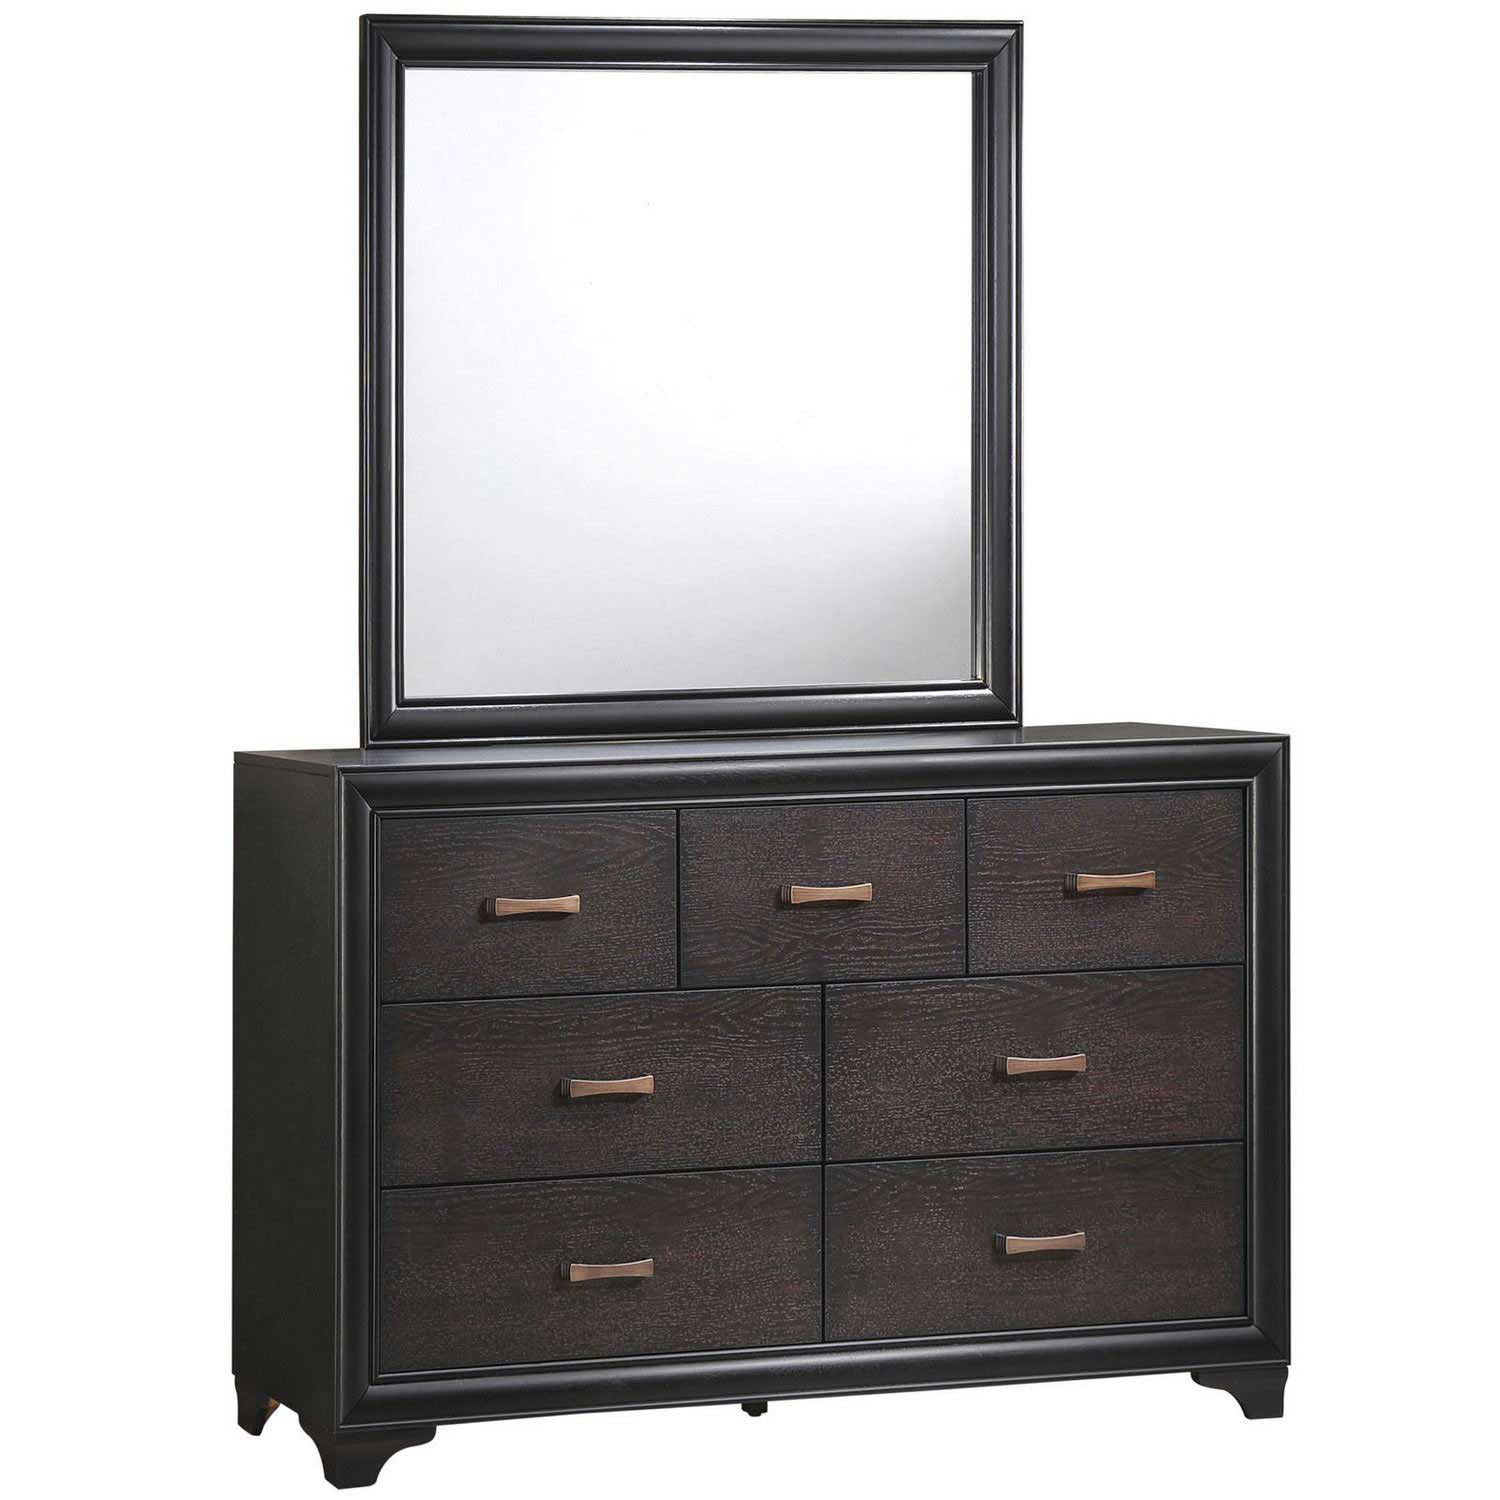 Modway Madison Dresser and Mirror - Walnut